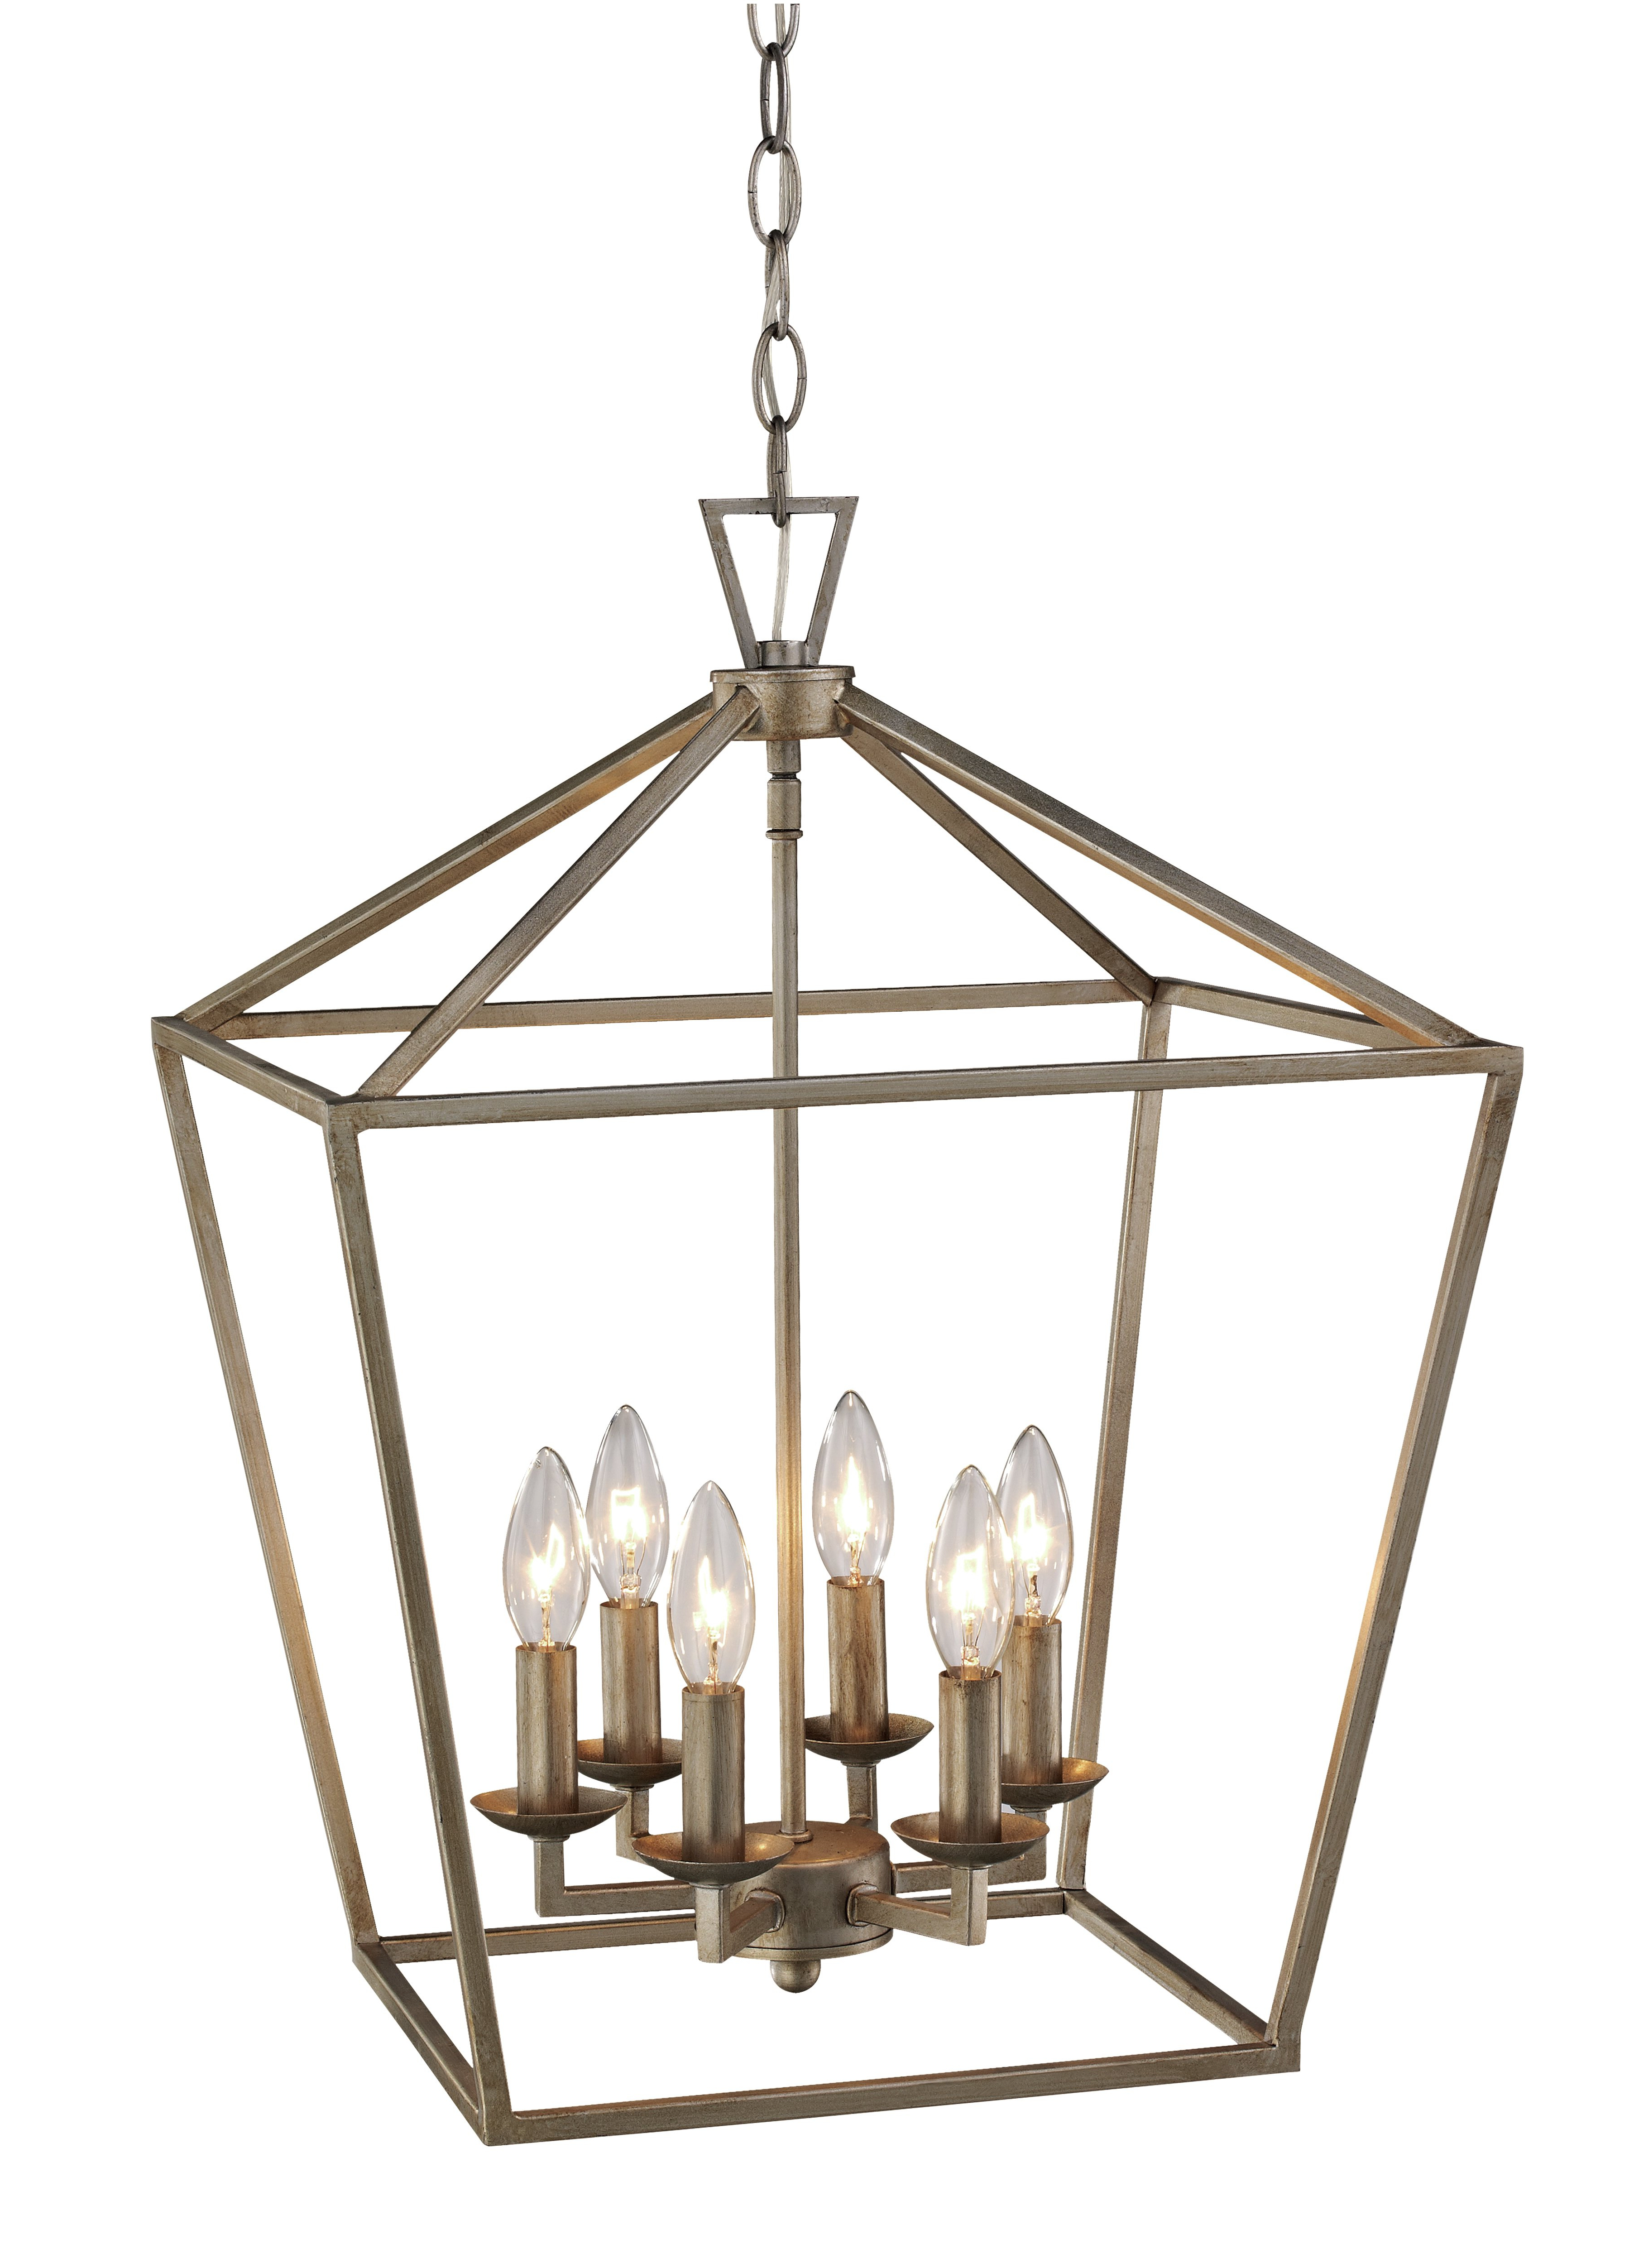 Louanne 1 Light Lantern Geometric Pendants In Well Known Laurel Foundry Modern Farmhouse Carmen 6 Light Lantern Geometric Pendant (View 18 of 25)